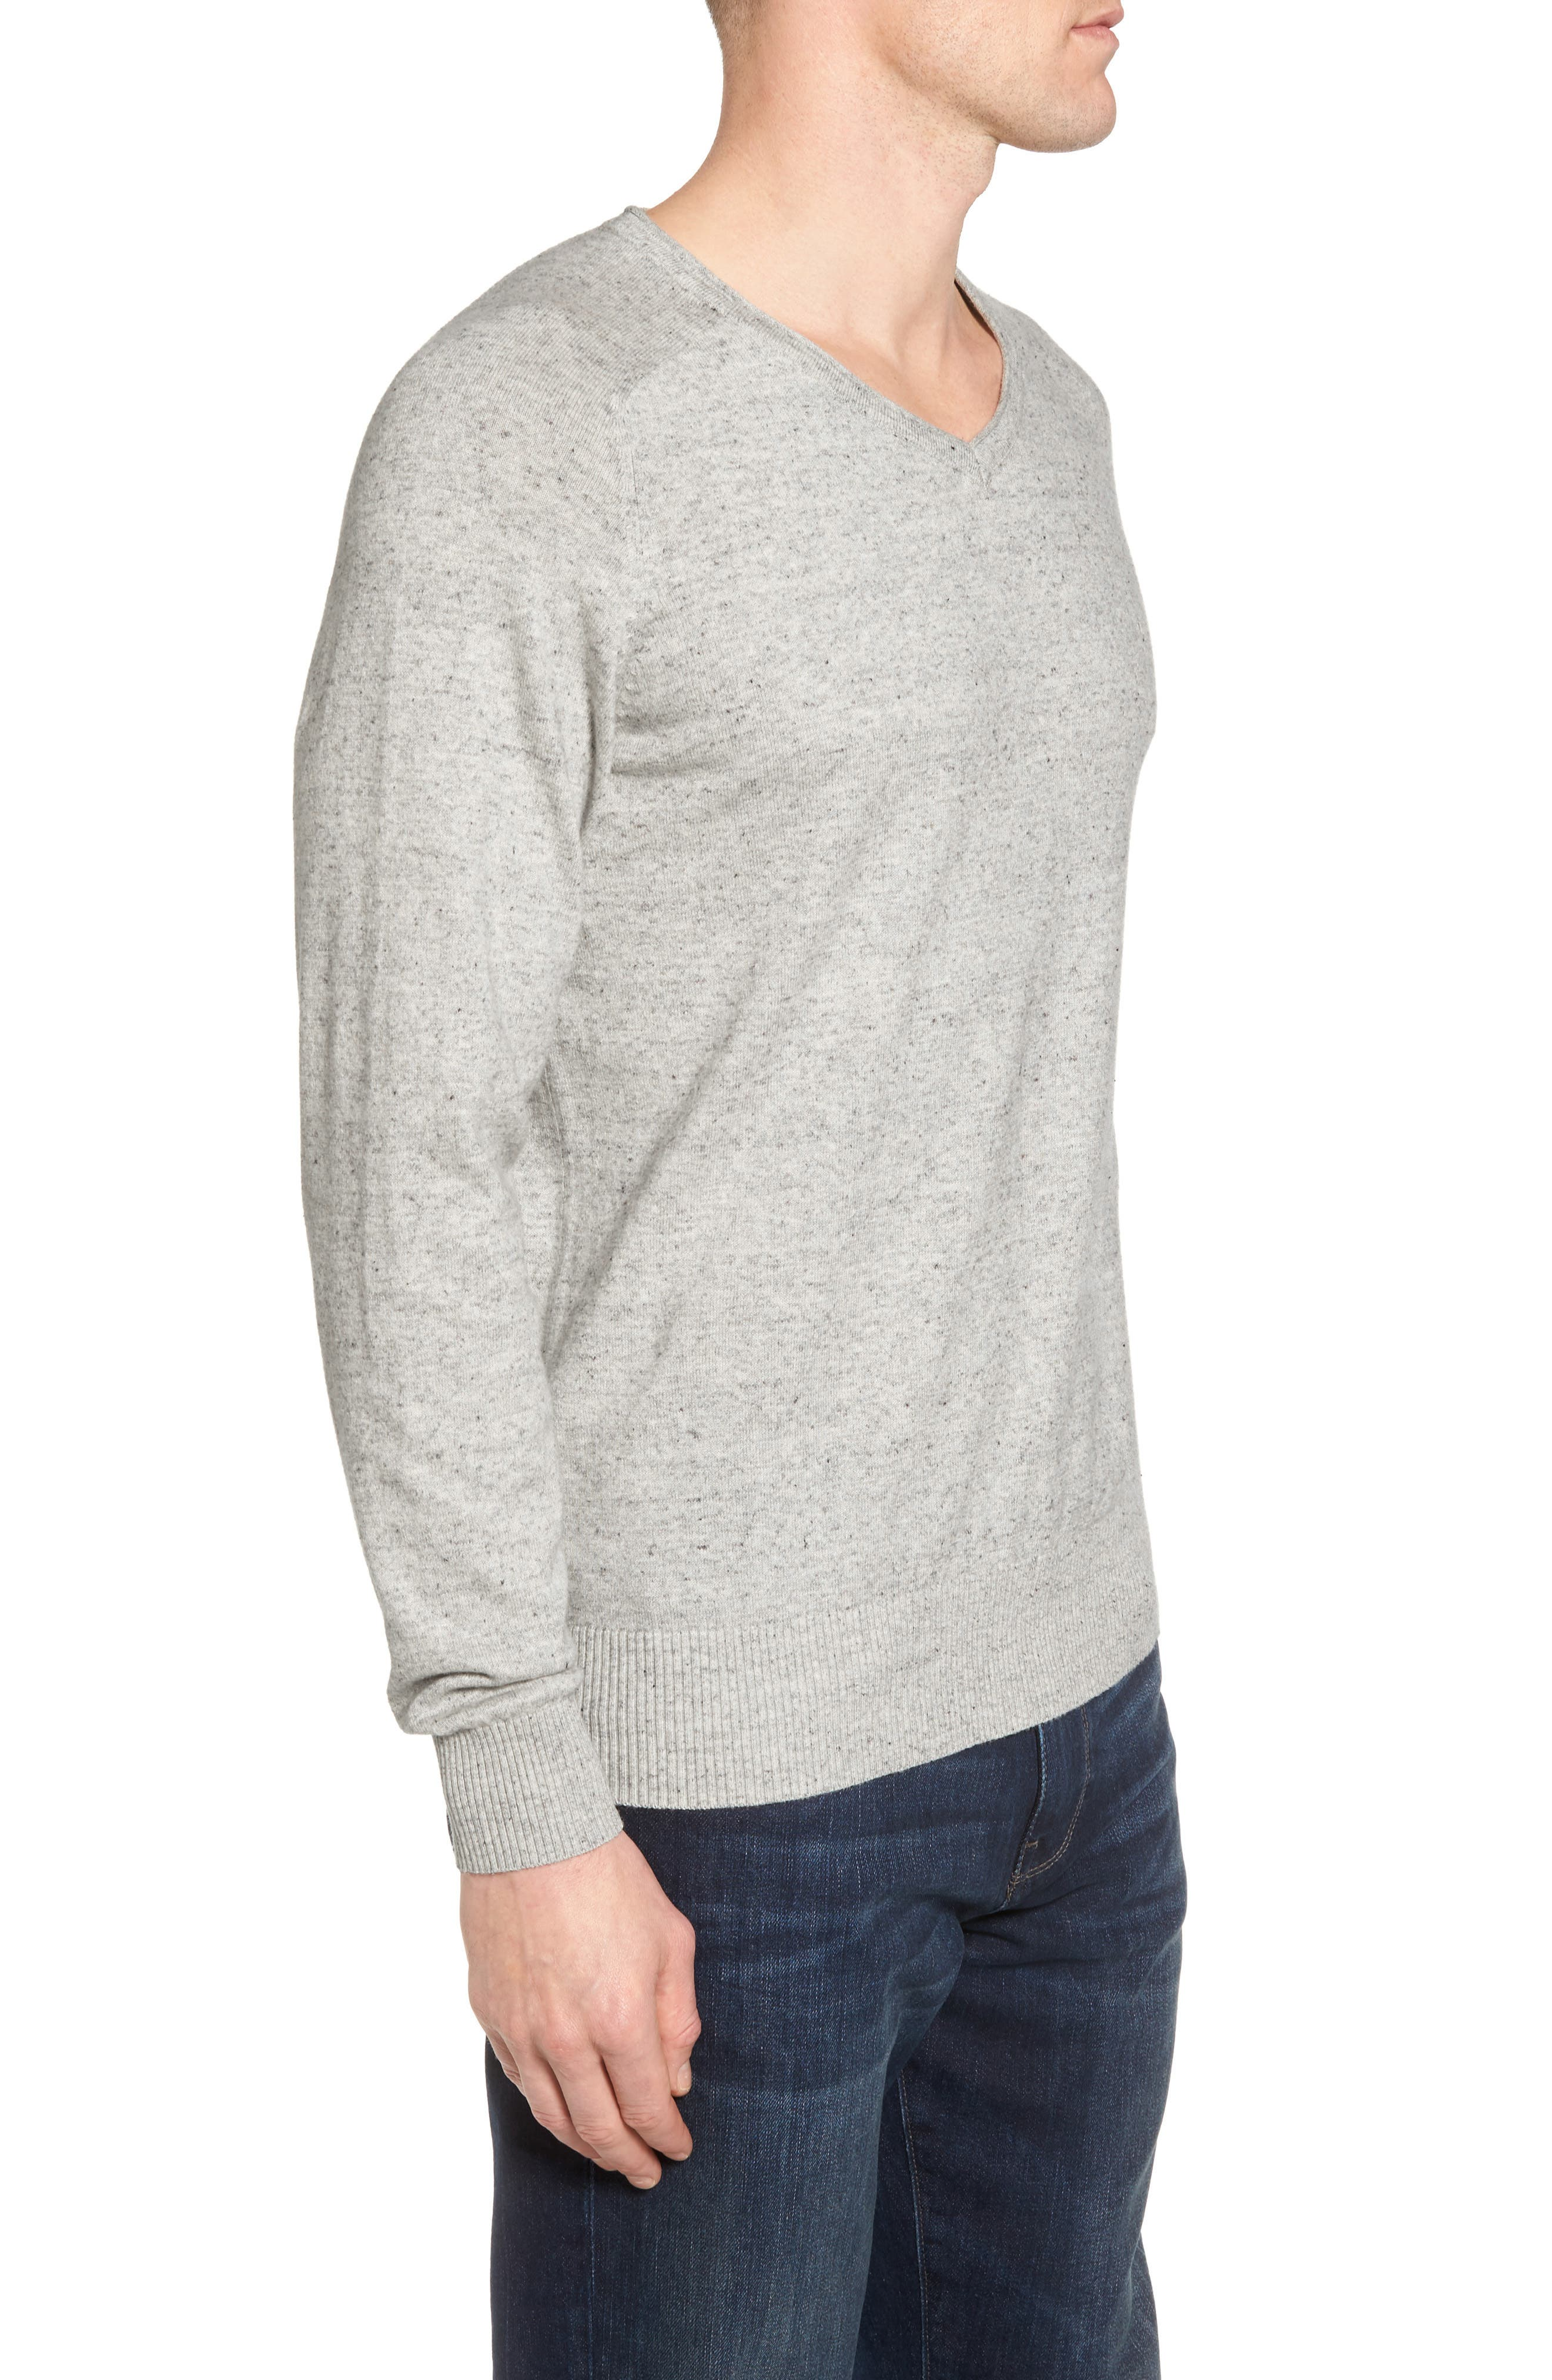 Arbors Cotton V-Neck Sweater,                             Alternate thumbnail 3, color,                             261